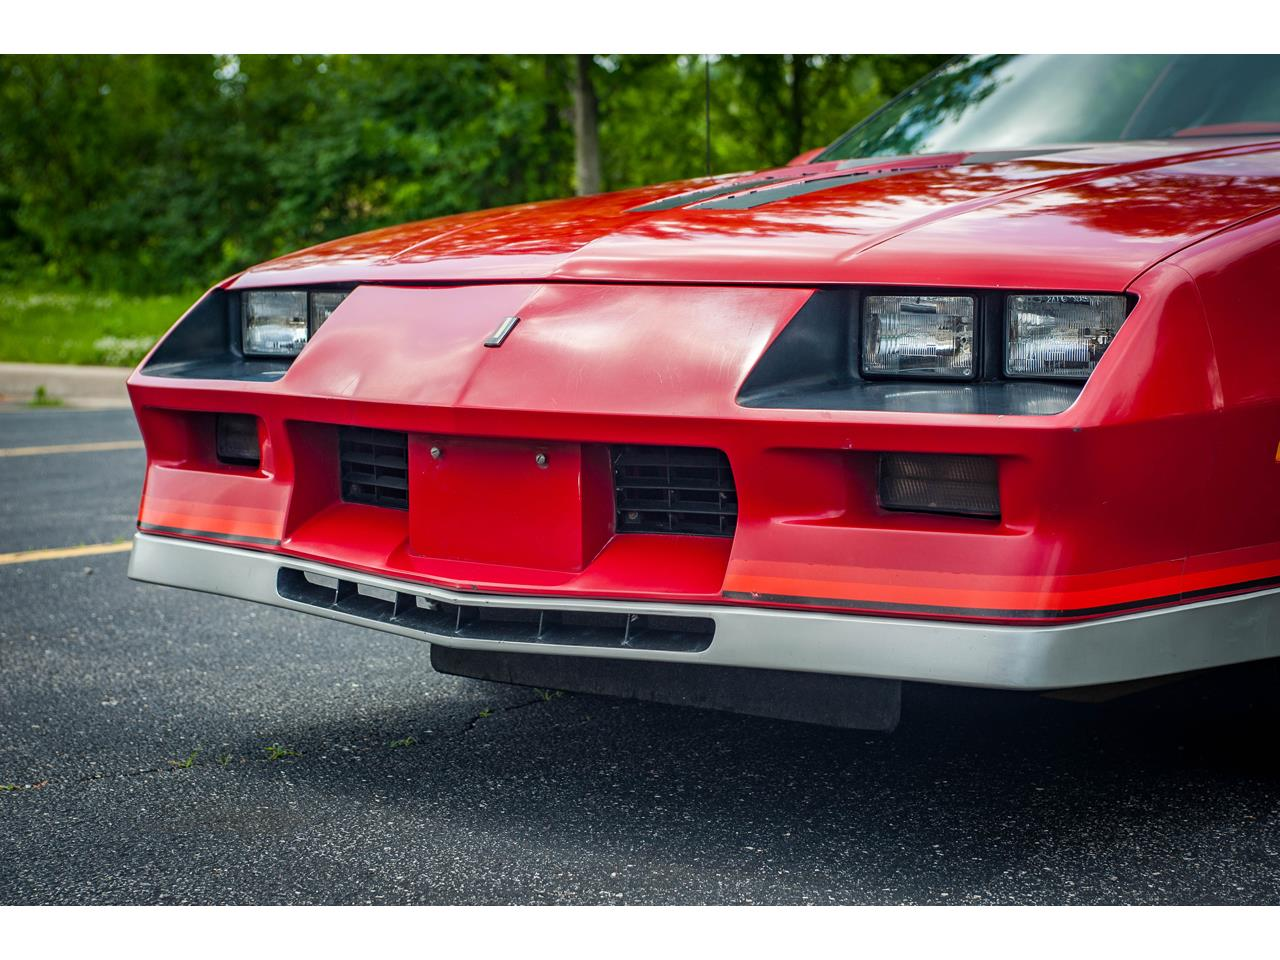 Large Picture of '84 Chevrolet Camaro located in Illinois - $9,500.00 Offered by Gateway Classic Cars - St. Louis - QB9Y